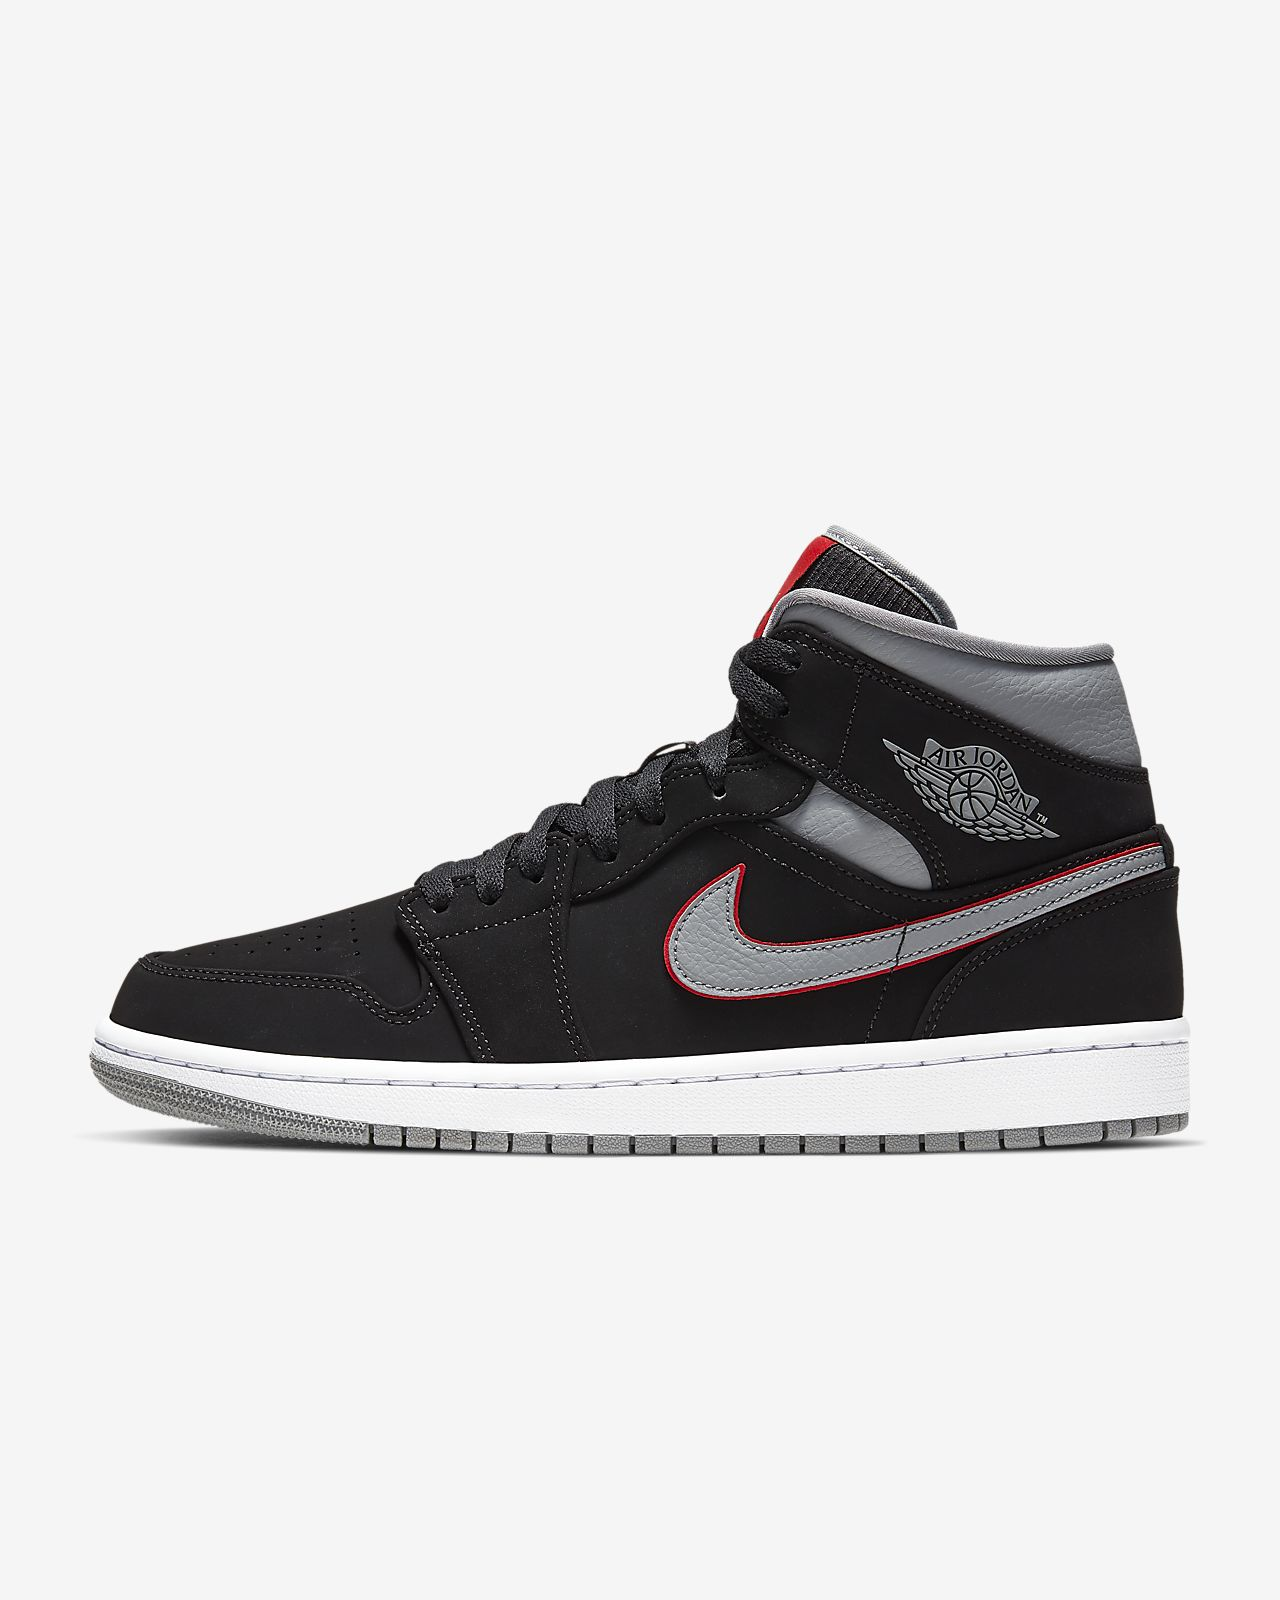 53899f7e42d7 Air Jordan 1 Mid Men s Shoe. Nike.com AU